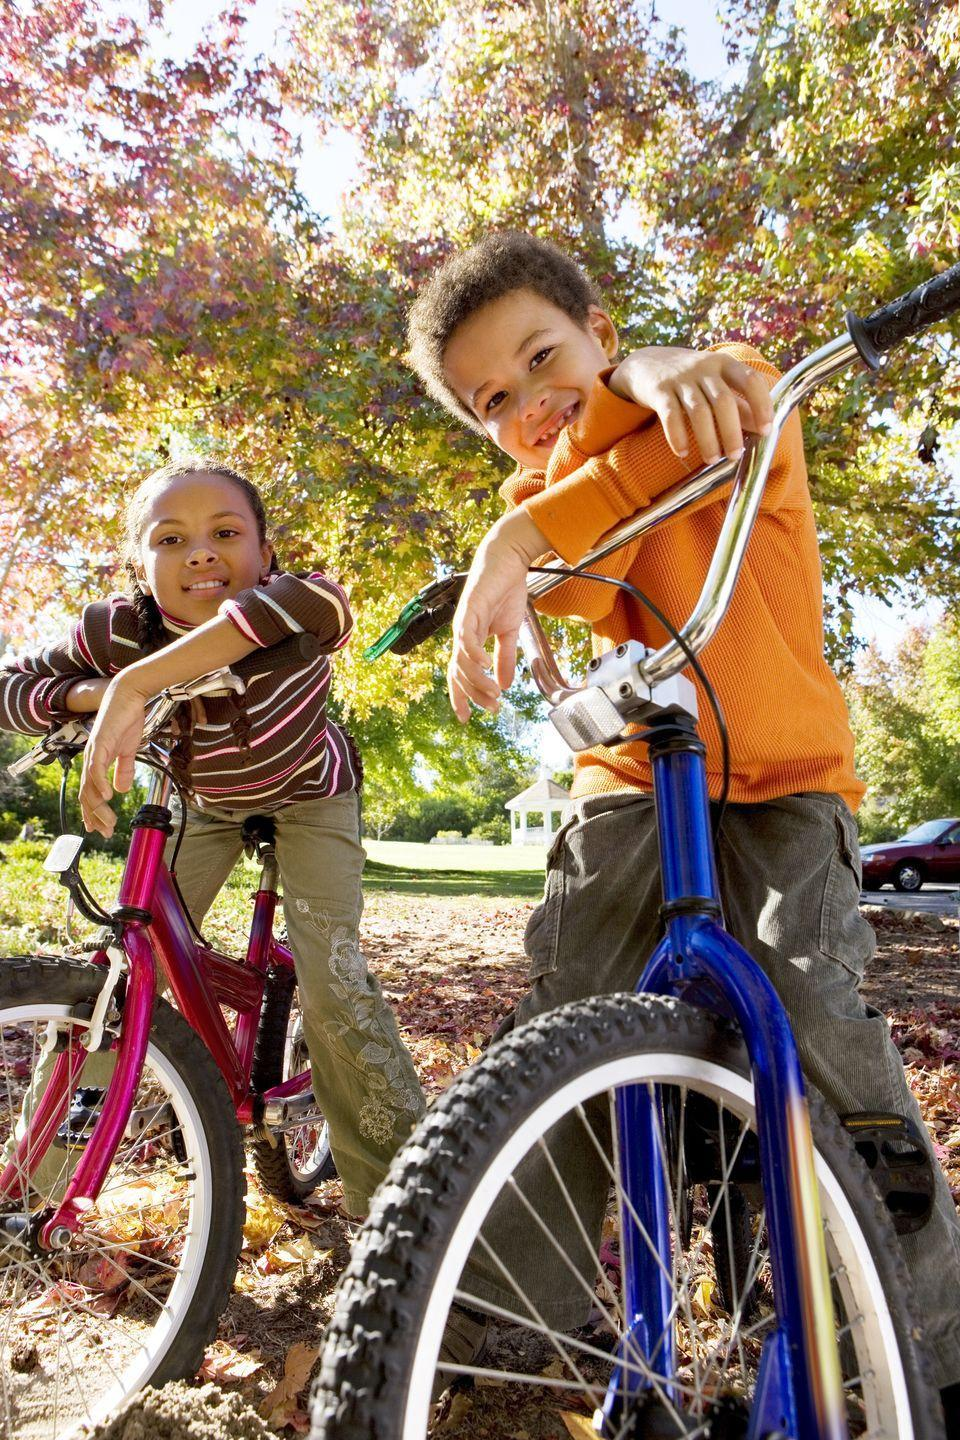 <p>Spend Halloween morning biking through a park or nearby neighborhood. Point out the prettiest fall foliage or the most fabulously decorated houses. It's a great way to get some exercise and enjoy the late-fall weather. </p>